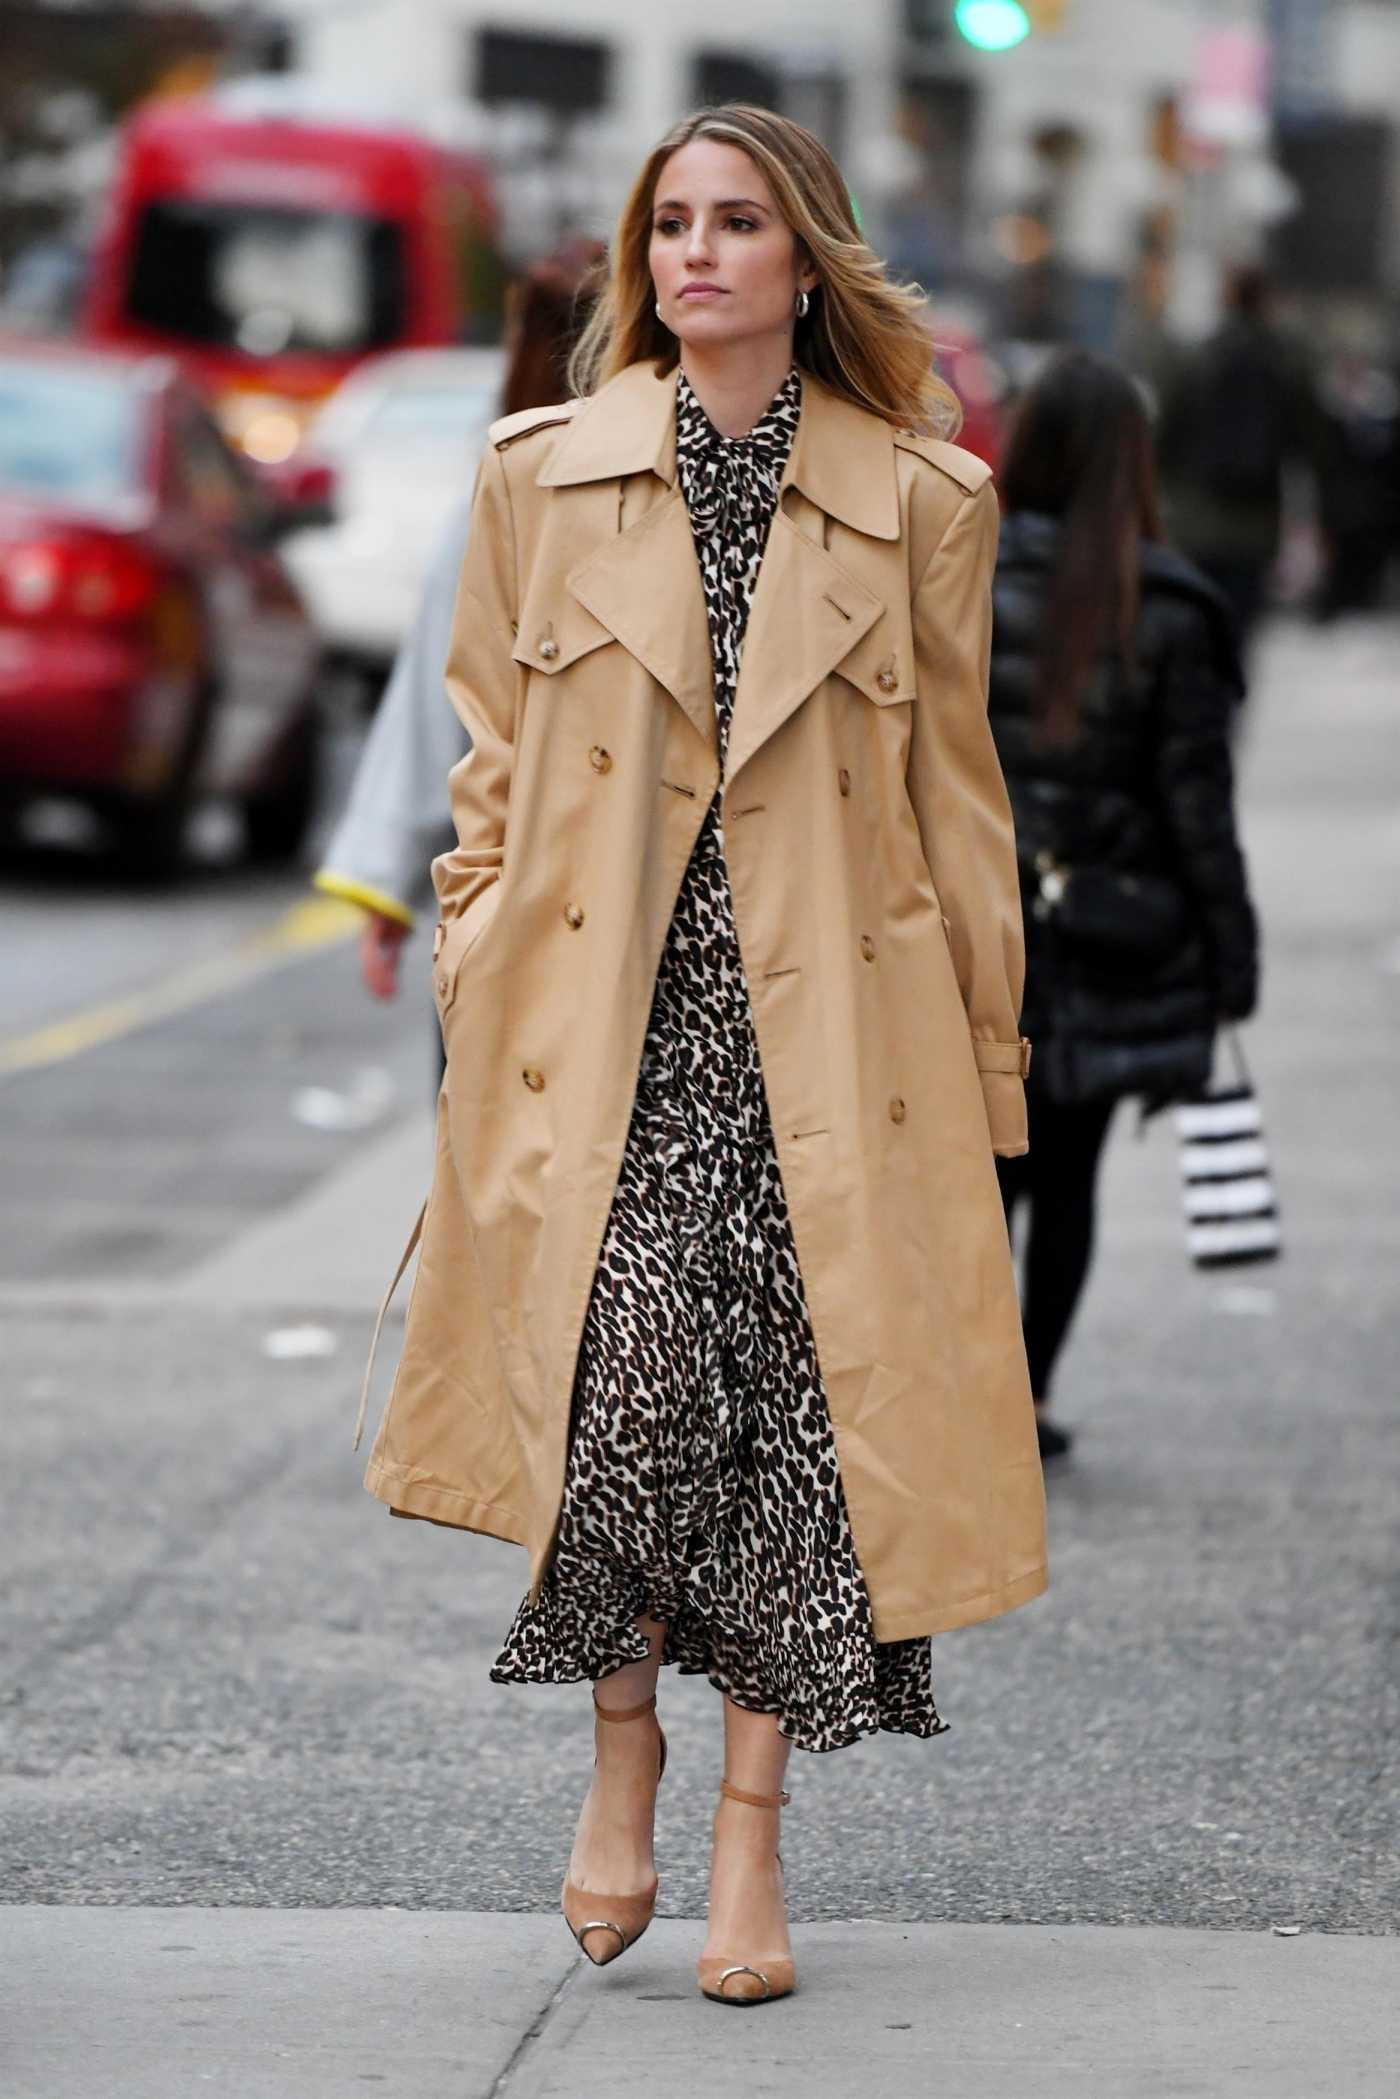 Dianna Agron in a Beige Trench Coat Was Seen Out in NYC 10/28/2019